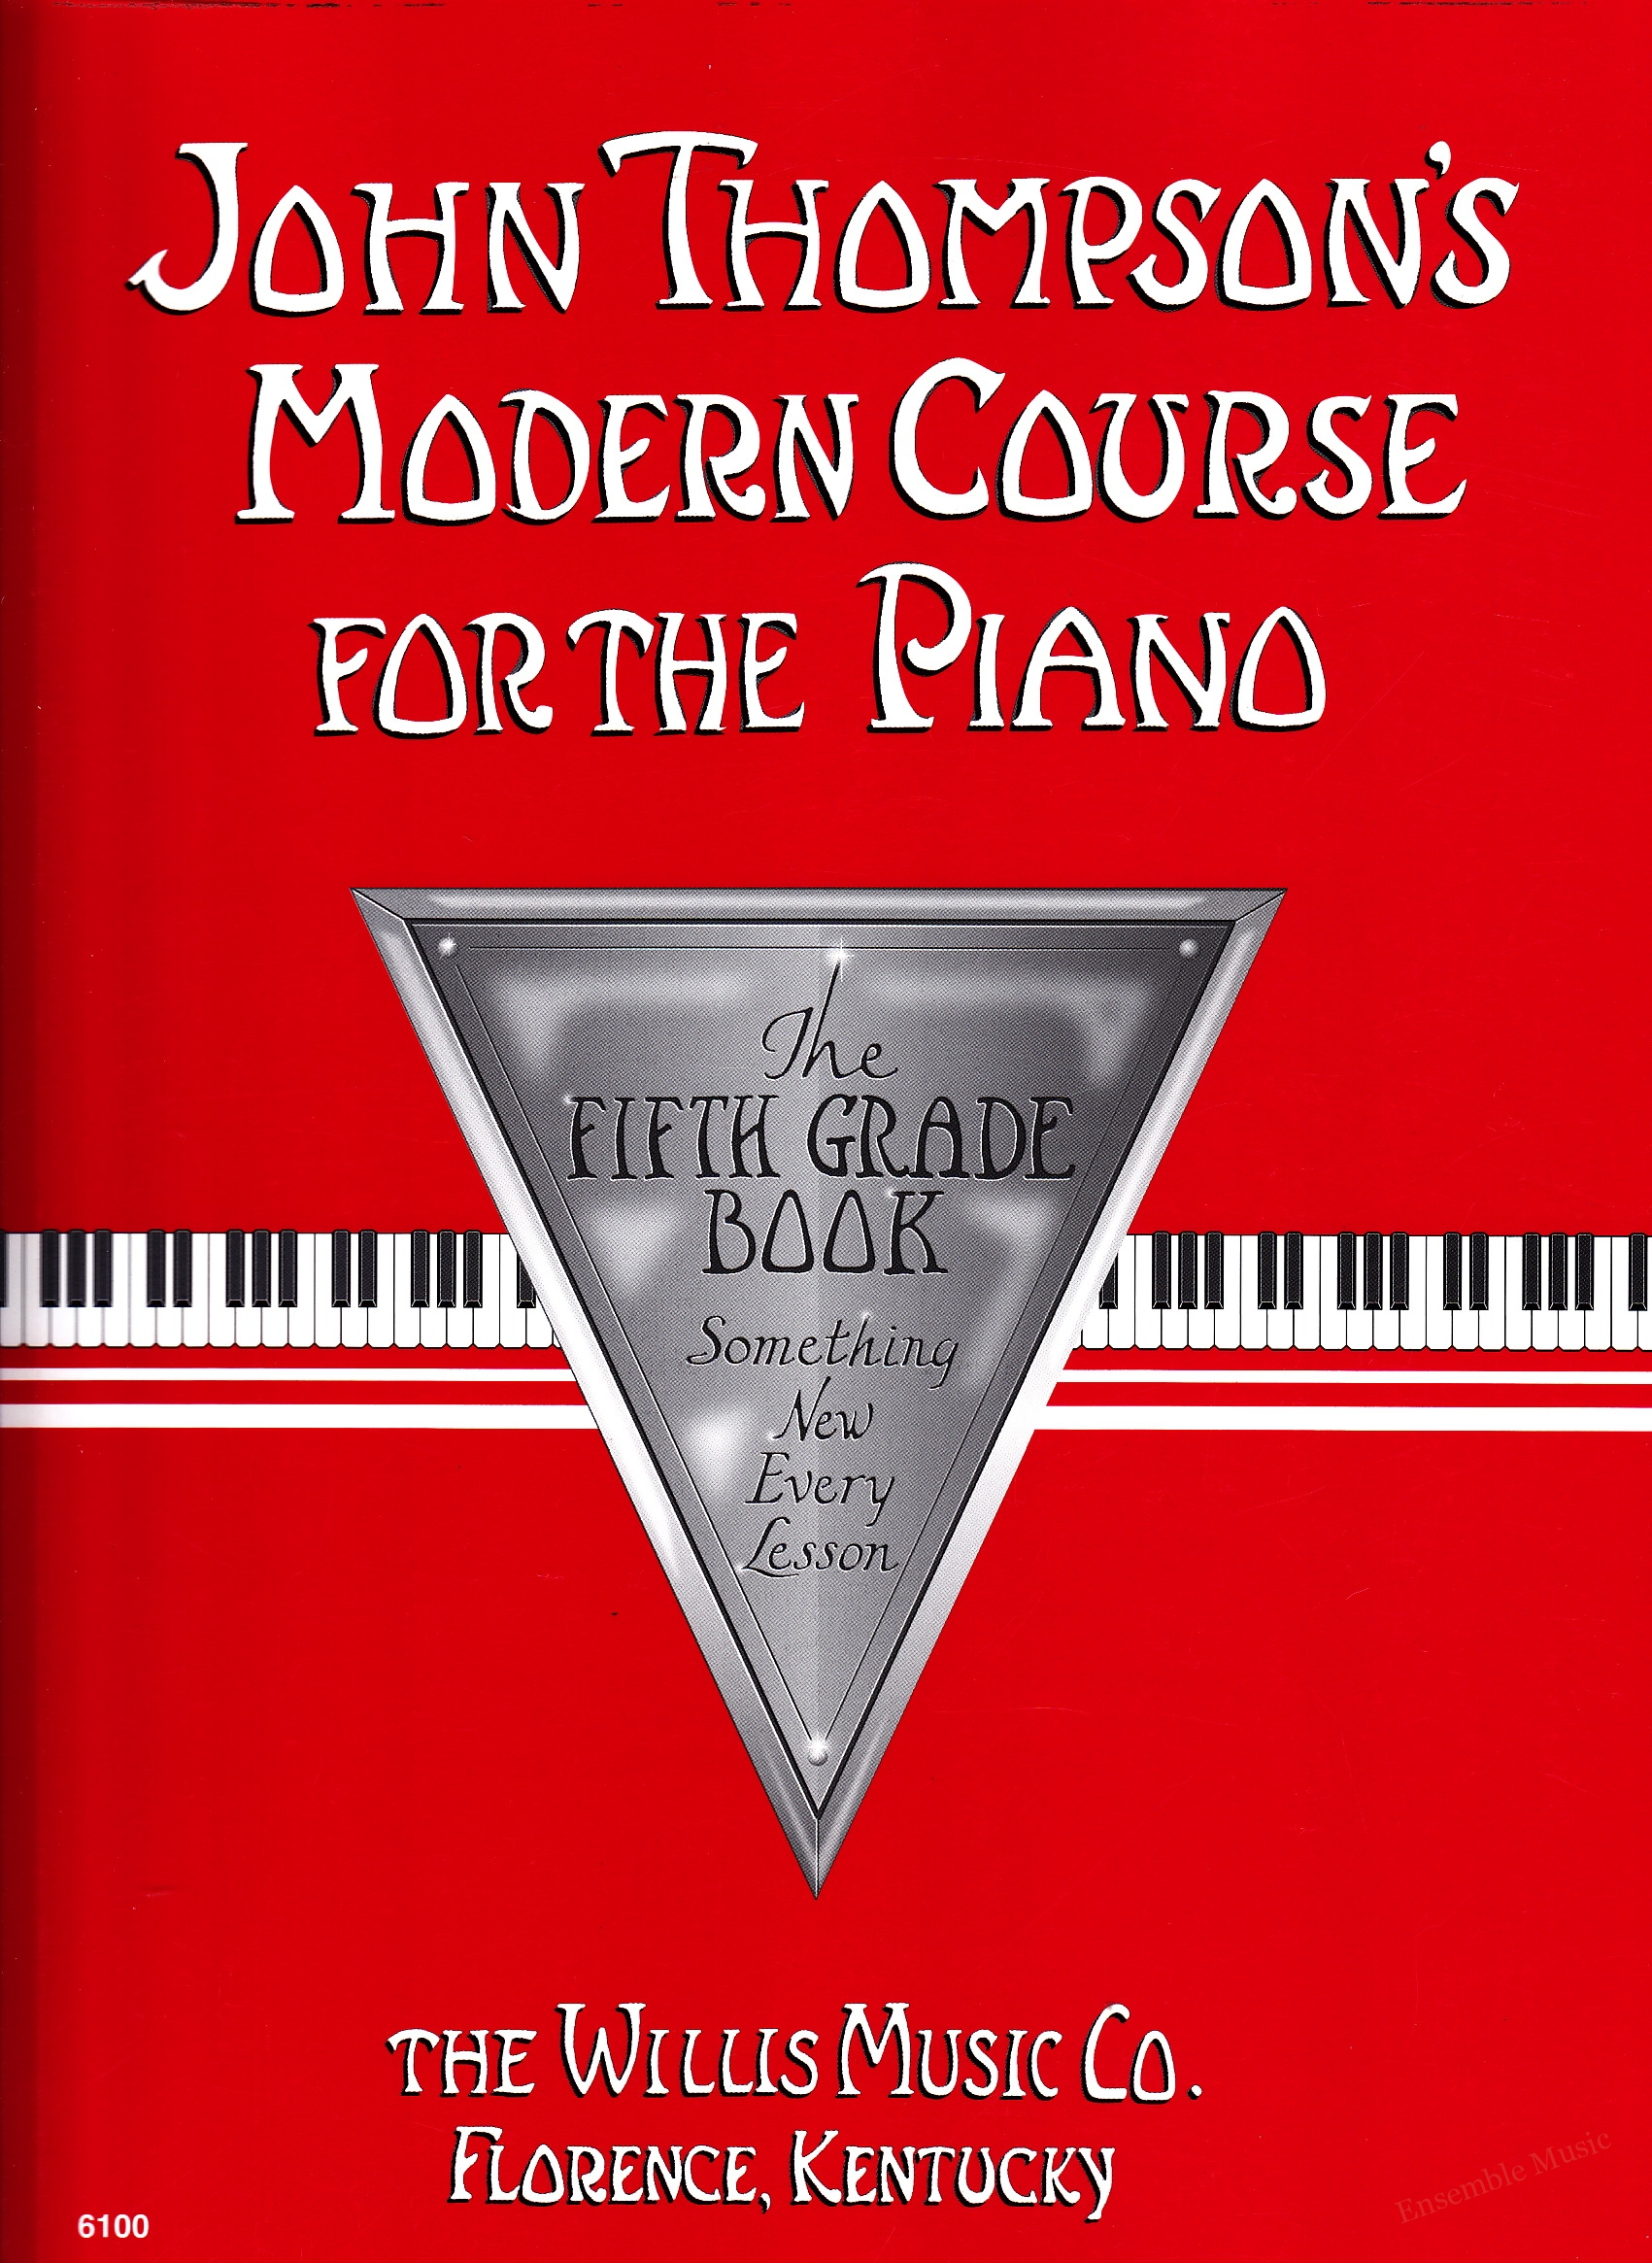 John Thompsons Modern Course for the PianoThe Fifth Grade Book